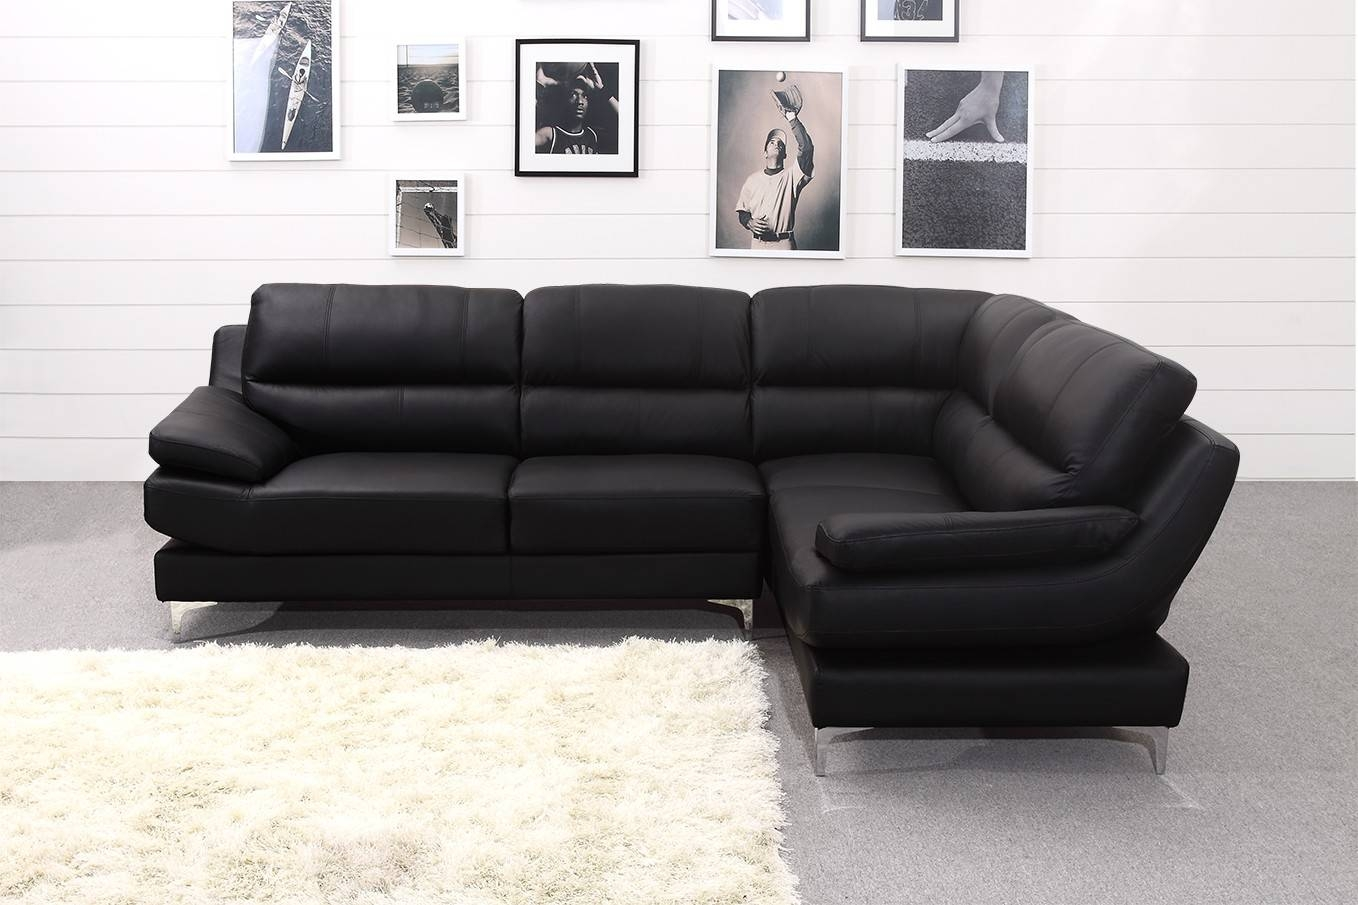 Leather Corner Sofa | Tehranmix Decoration In Cheap Corner Sofa (View 16 of 30)